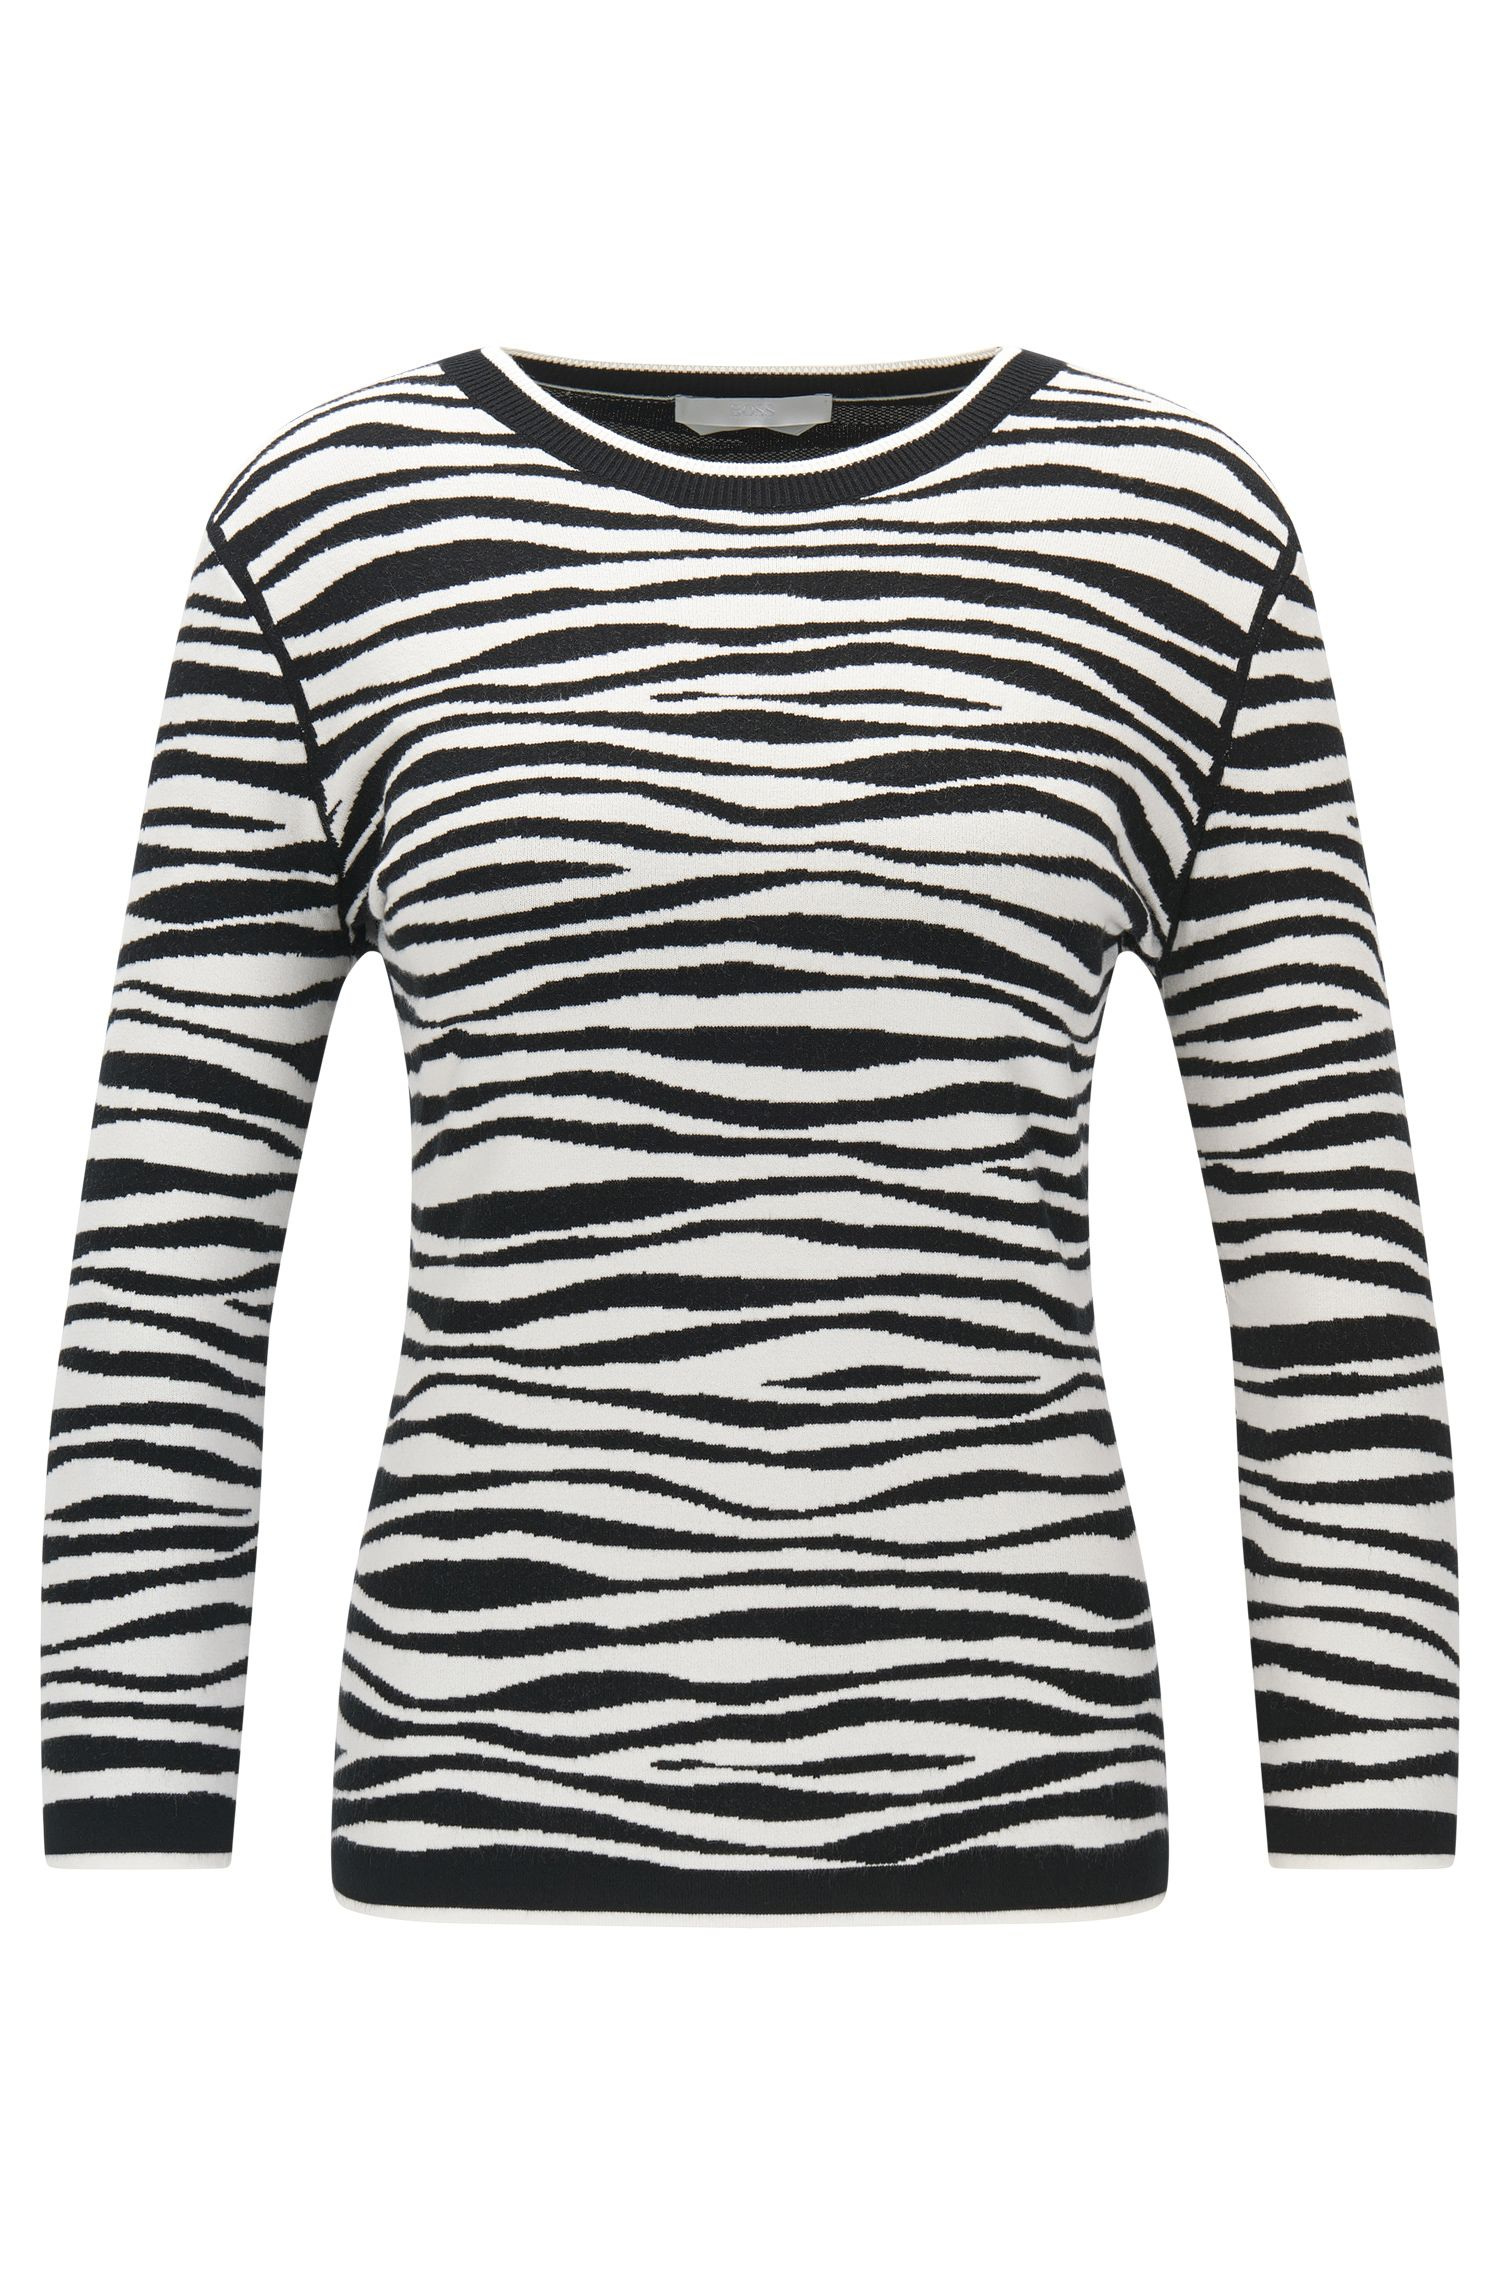 Zebra-stripe sweater in soft jacquard